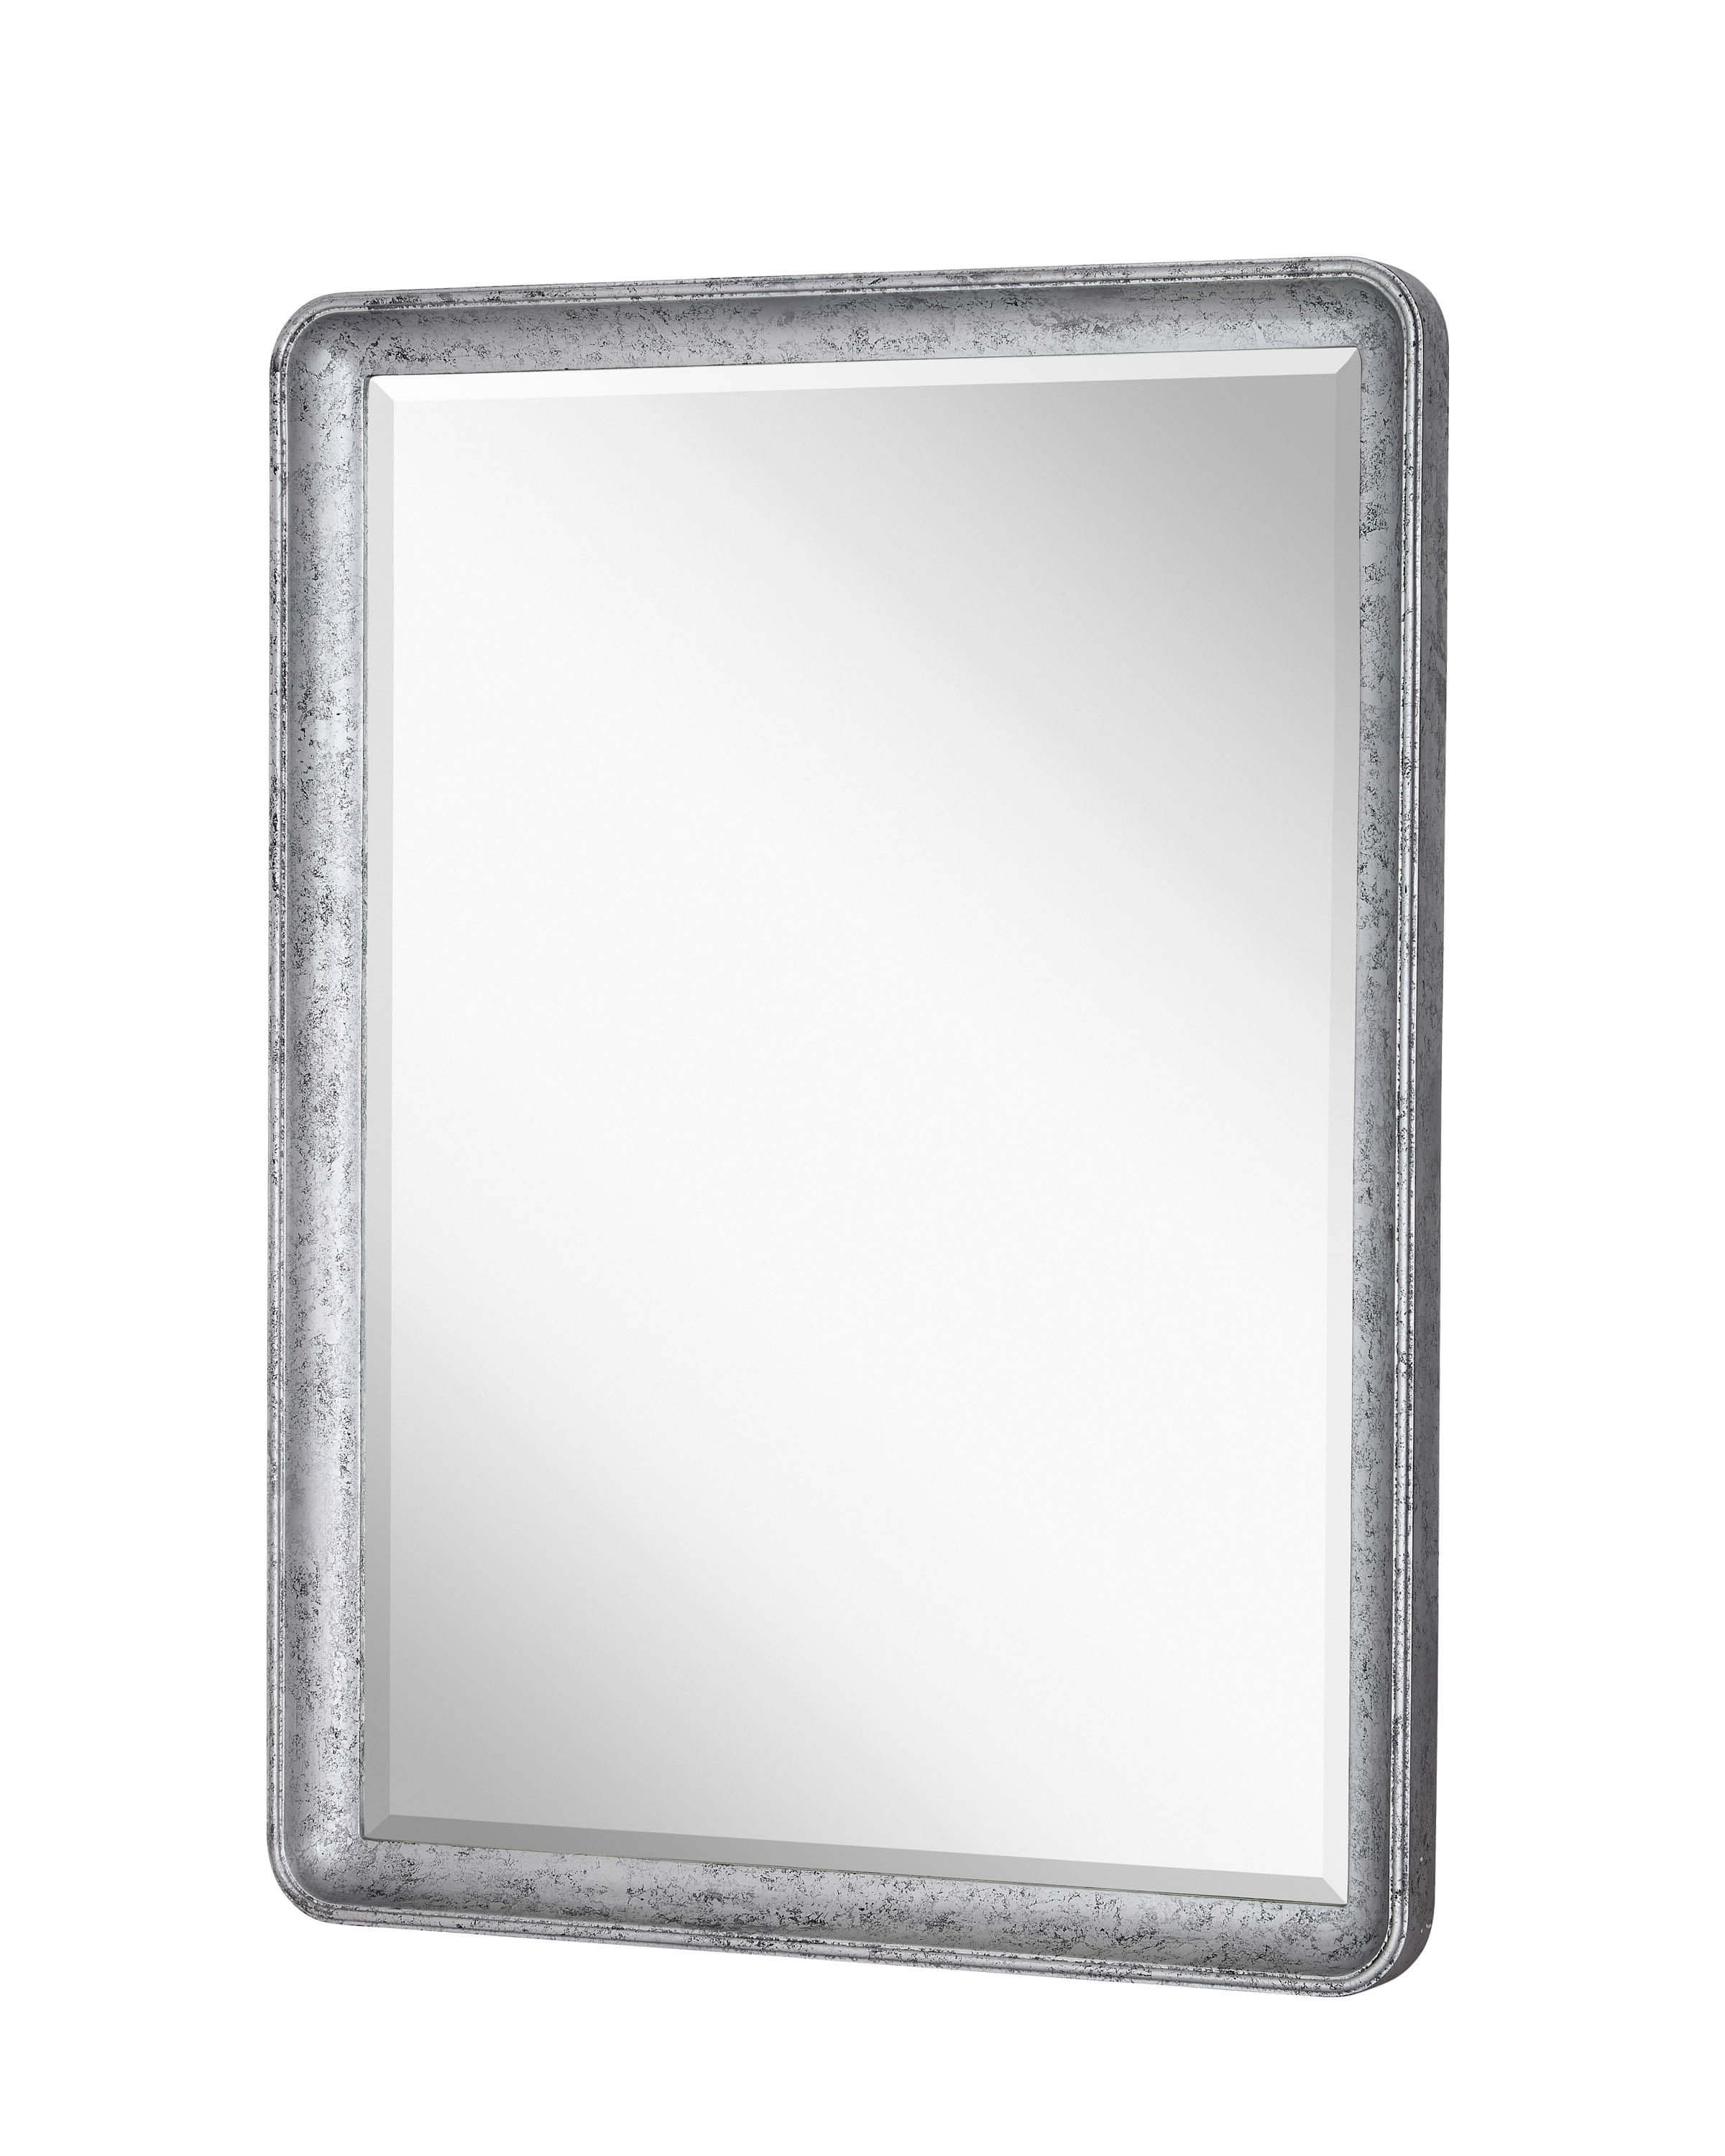 3218 B – Majestic Mirror & Frame Regarding Latest Silver Frame Accent Mirrors (Gallery 17 of 20)